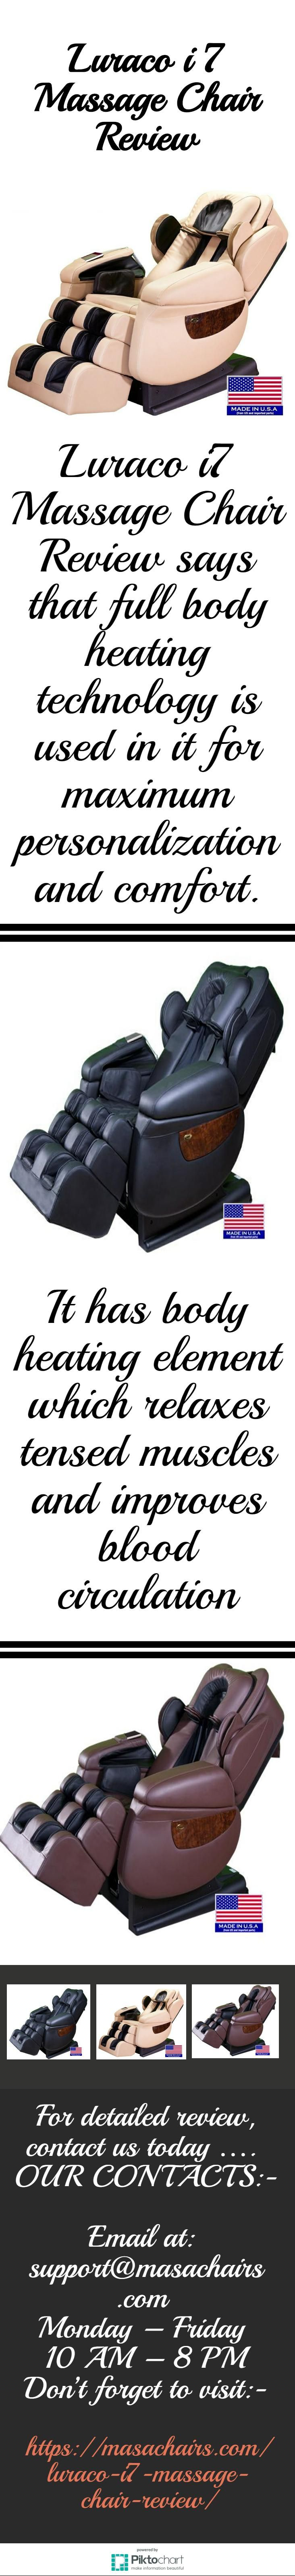 Attrayant The Luraco I7 Massage Chair Review Says That Body Heating Element Used In  It Which Relaxes Tensed Muscles And Improves Blood Circulation.